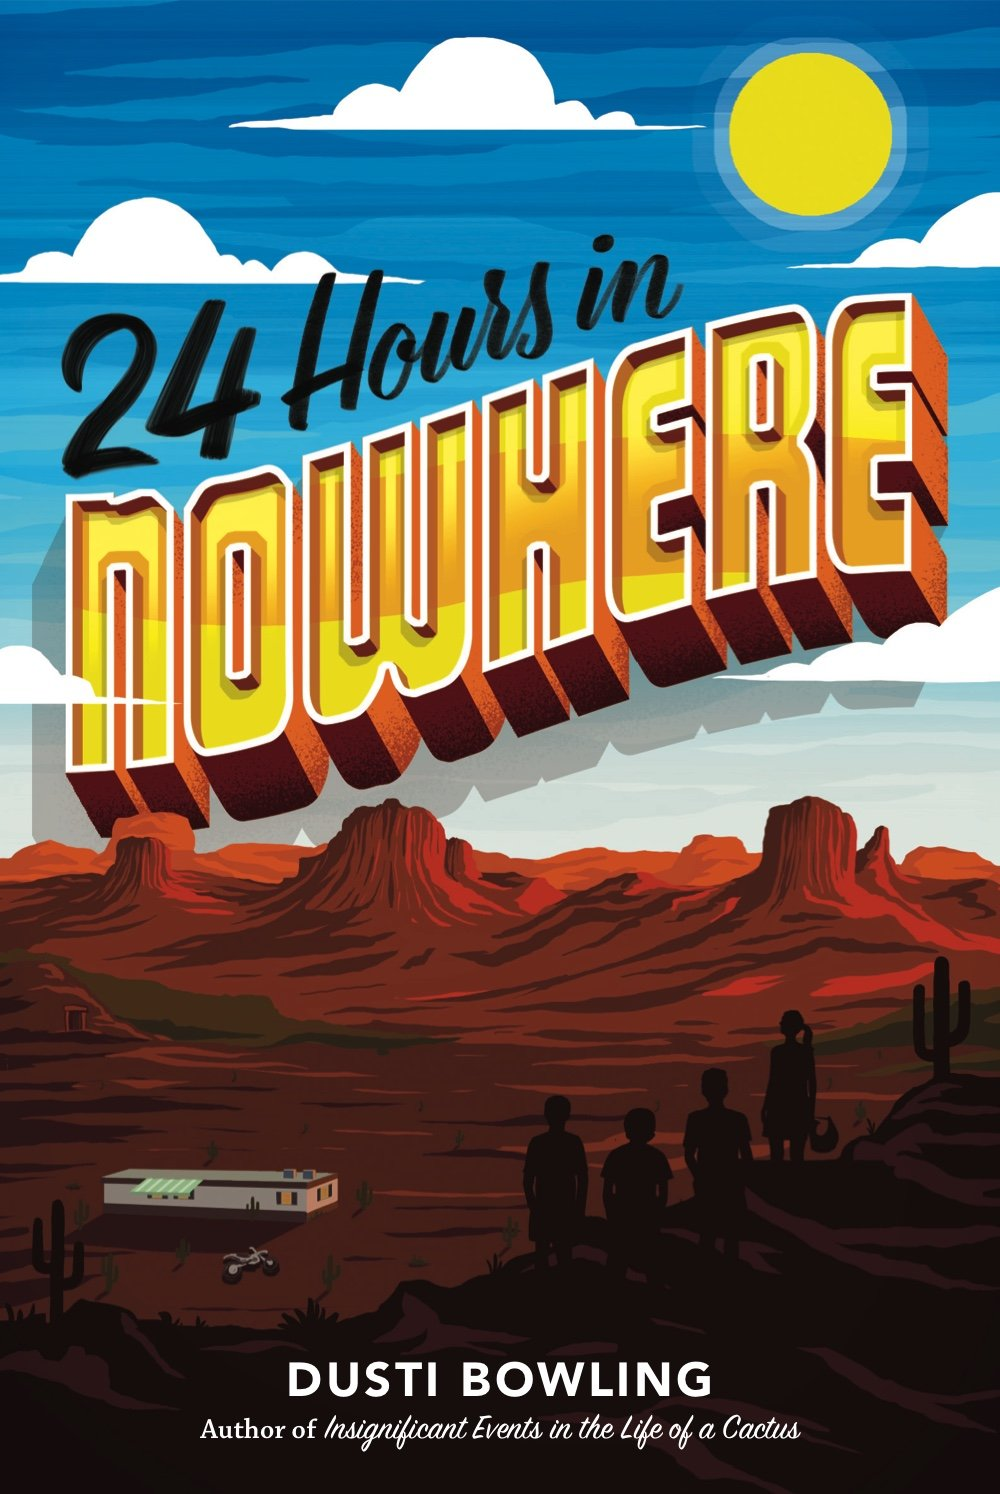 24 Hours in Nowhere by Dusti Bowling | SLJ Review